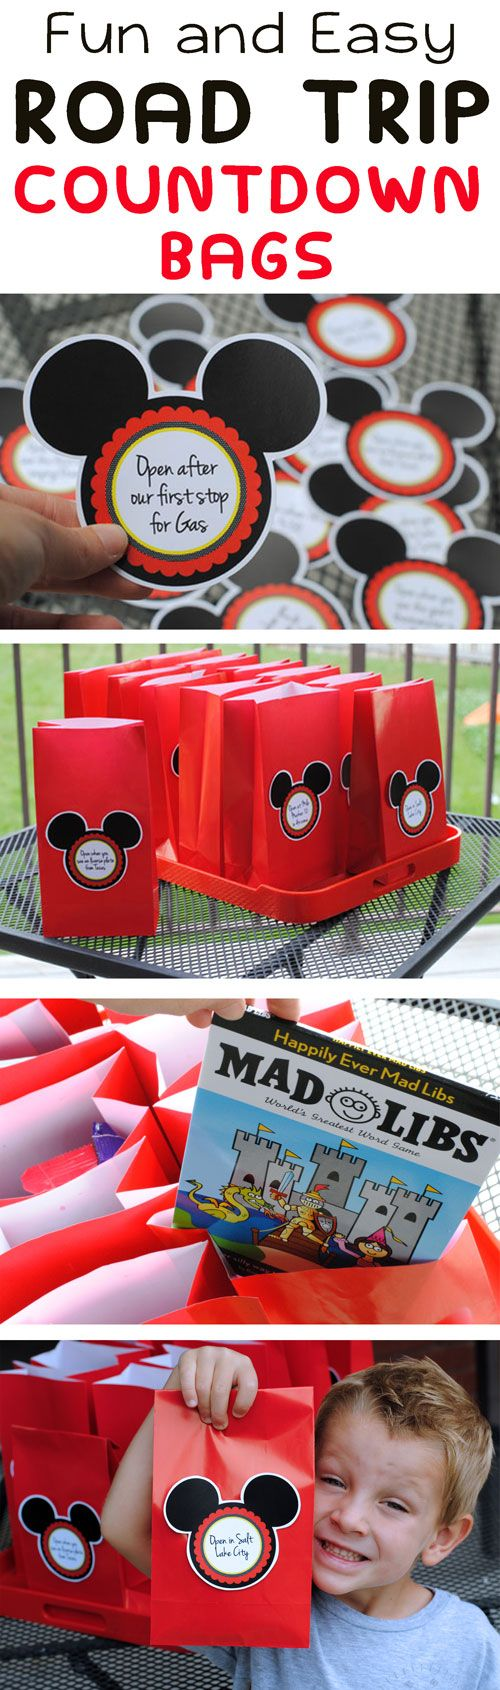 What kid wouldn't love these before a vacation?! Disney Road Trip Surprise Bags